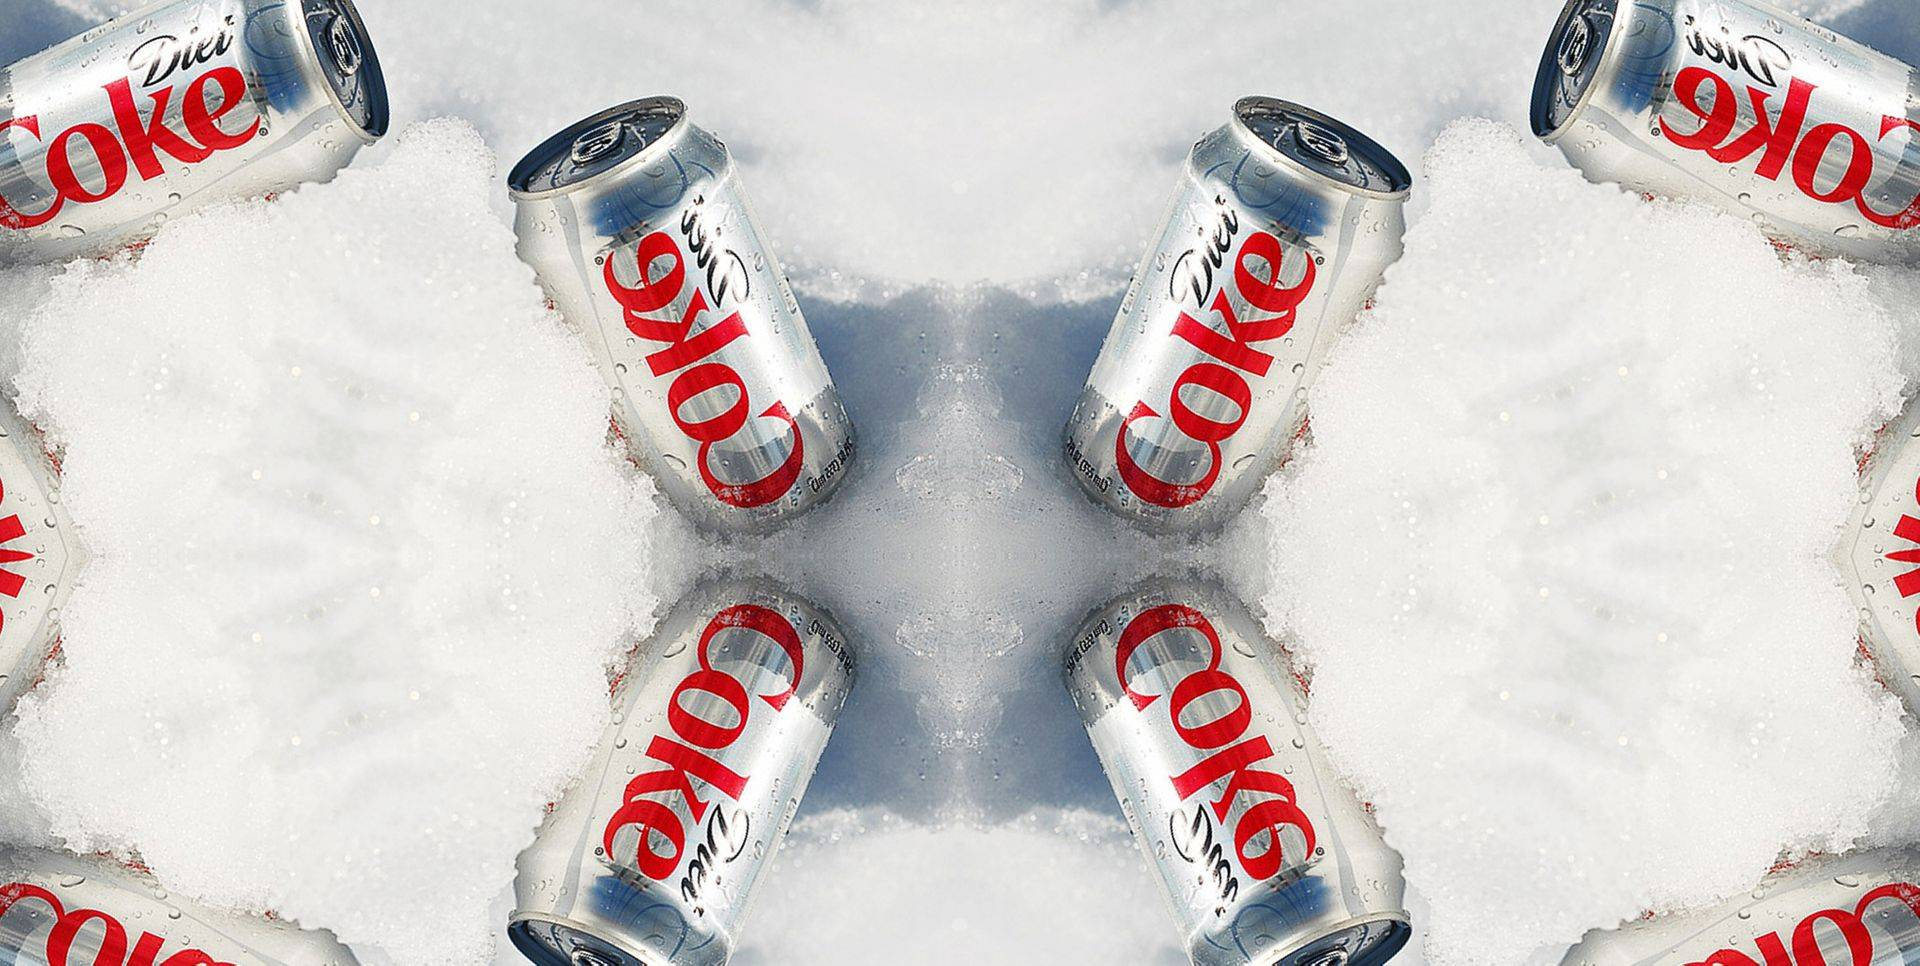 Diet coke cans in ice